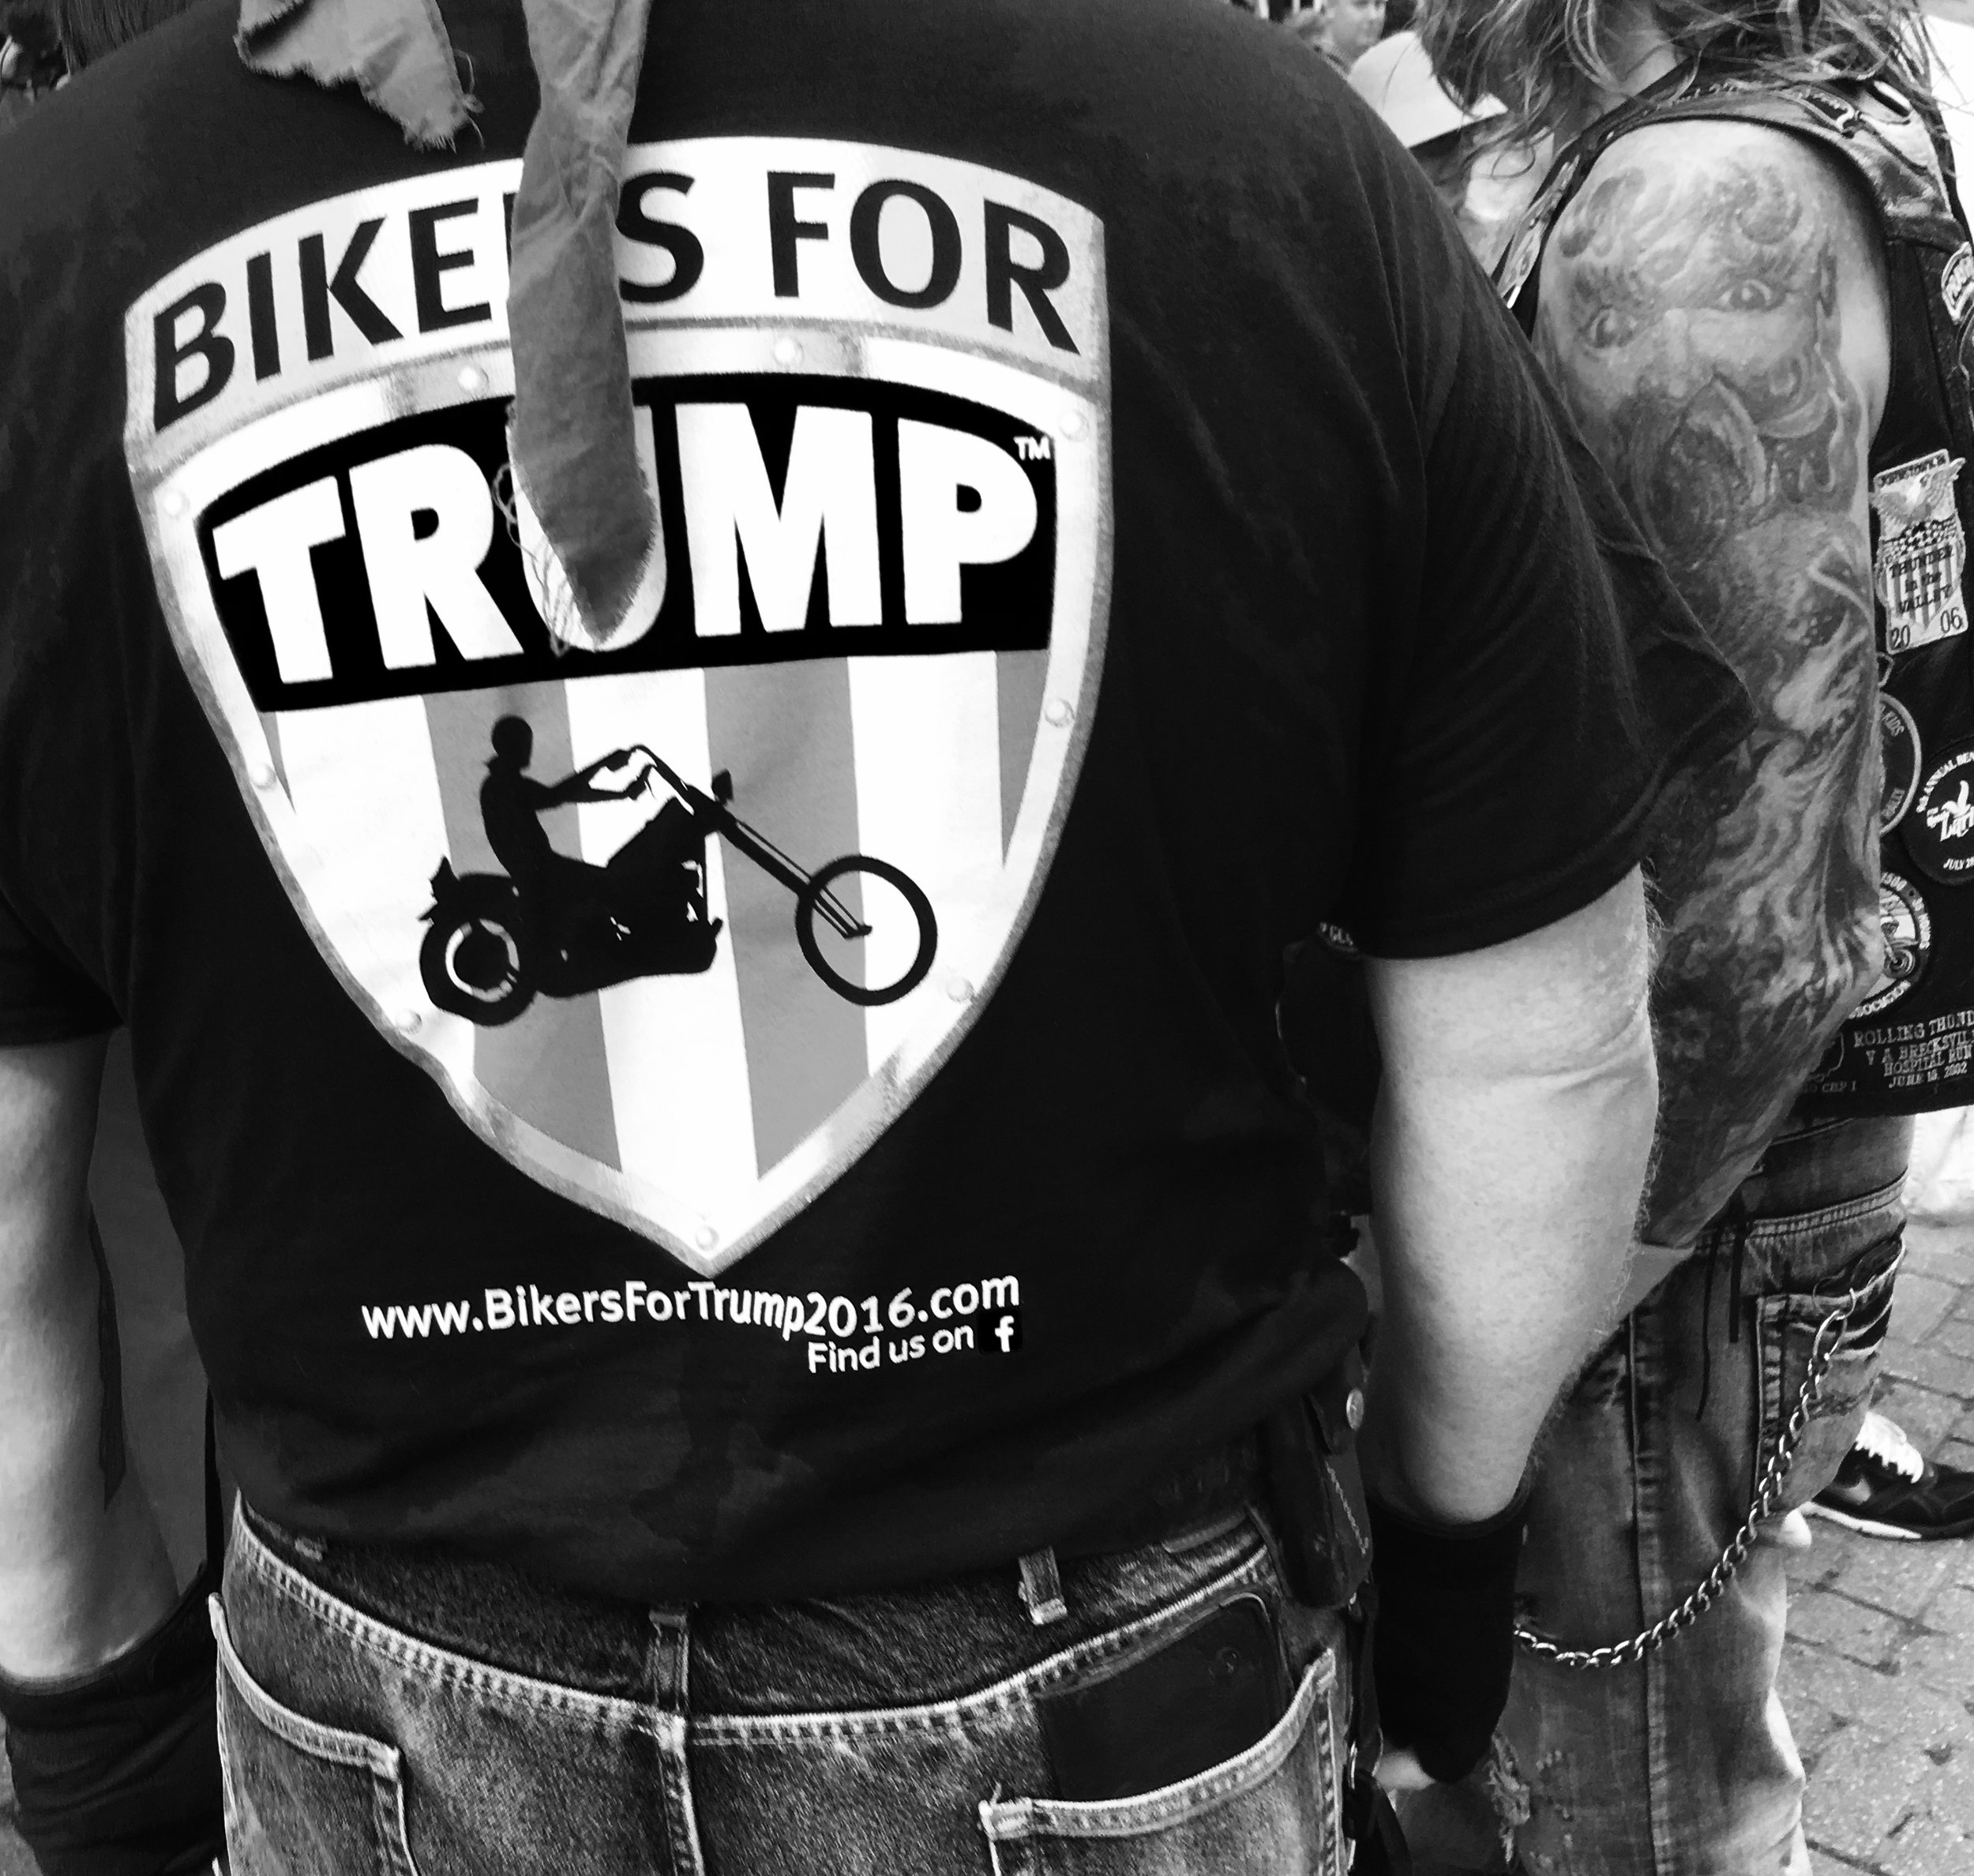 """ Bikers For Trump, Find Us On Facebook  - Cleveland, 2016"" Photo © by Tony Puryear, 2016 all rights reserved."